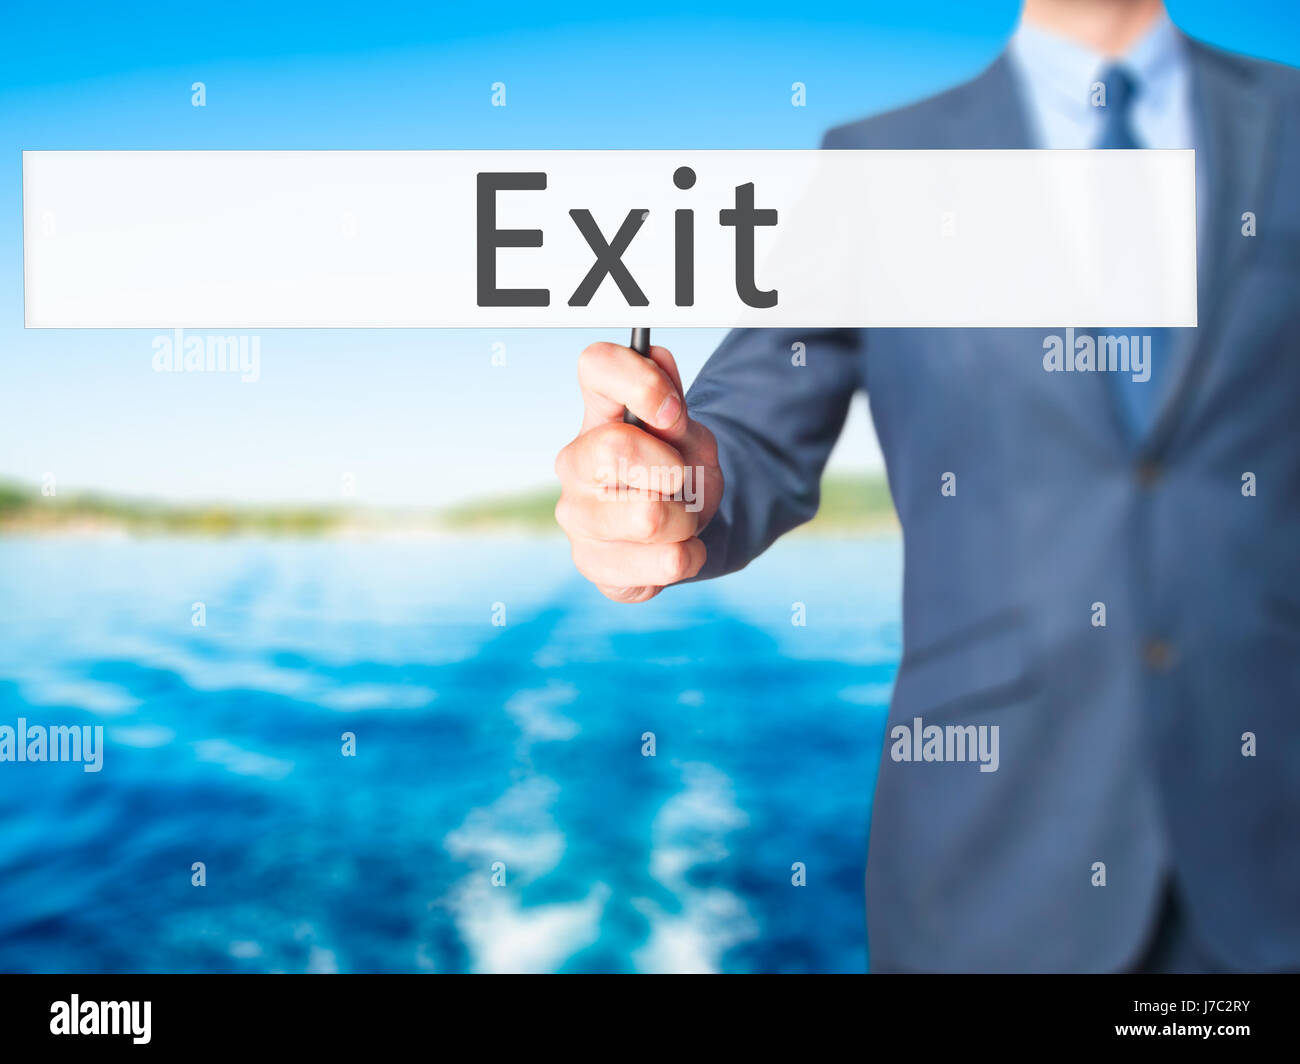 Exit - Businessman hand holding sign. Business, technology, internet concept. Stock Photo - Stock Image